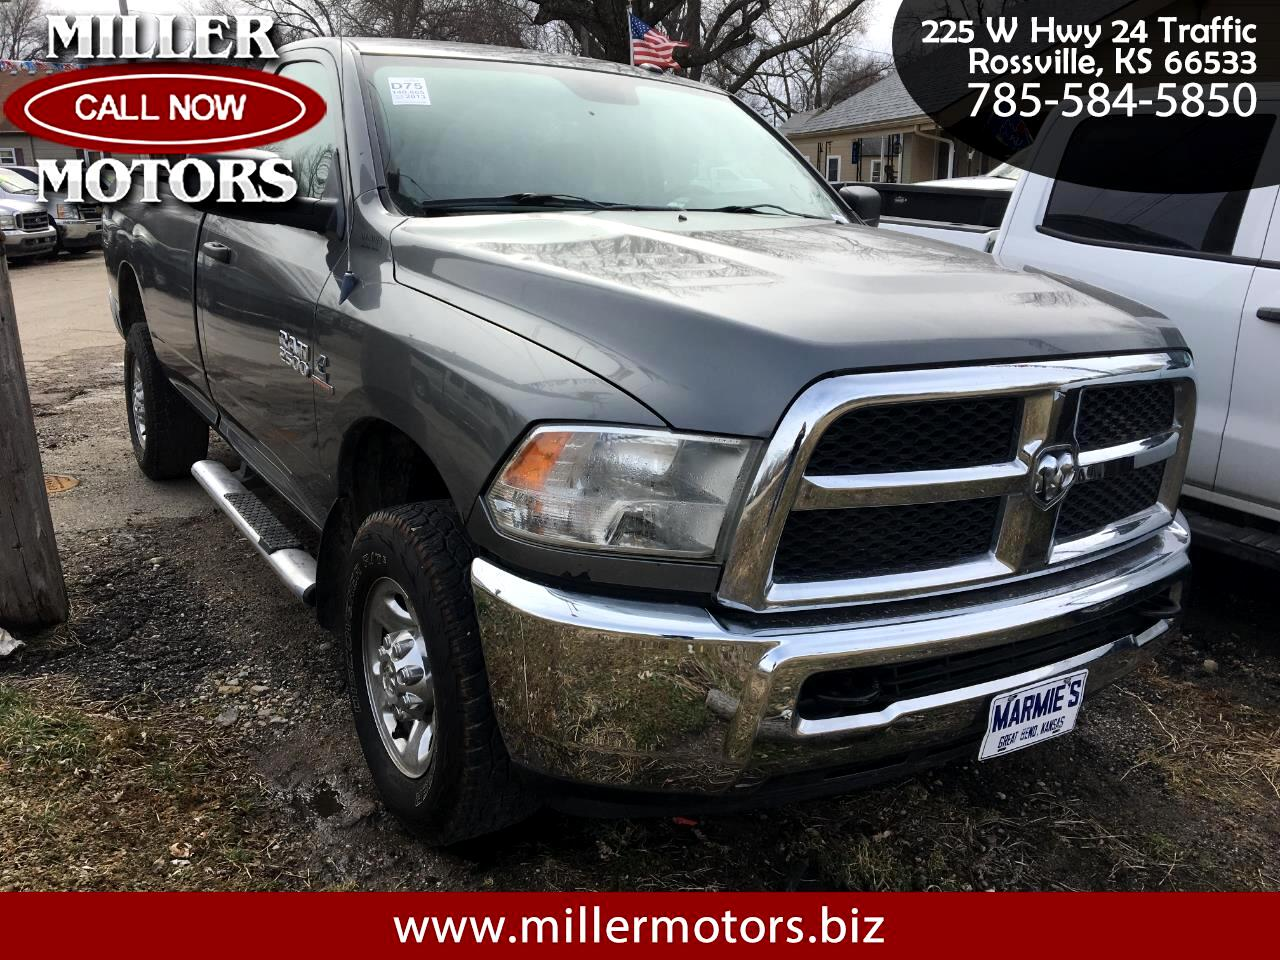 2013 RAM 2500 Tradesman Regular Cab 4WD